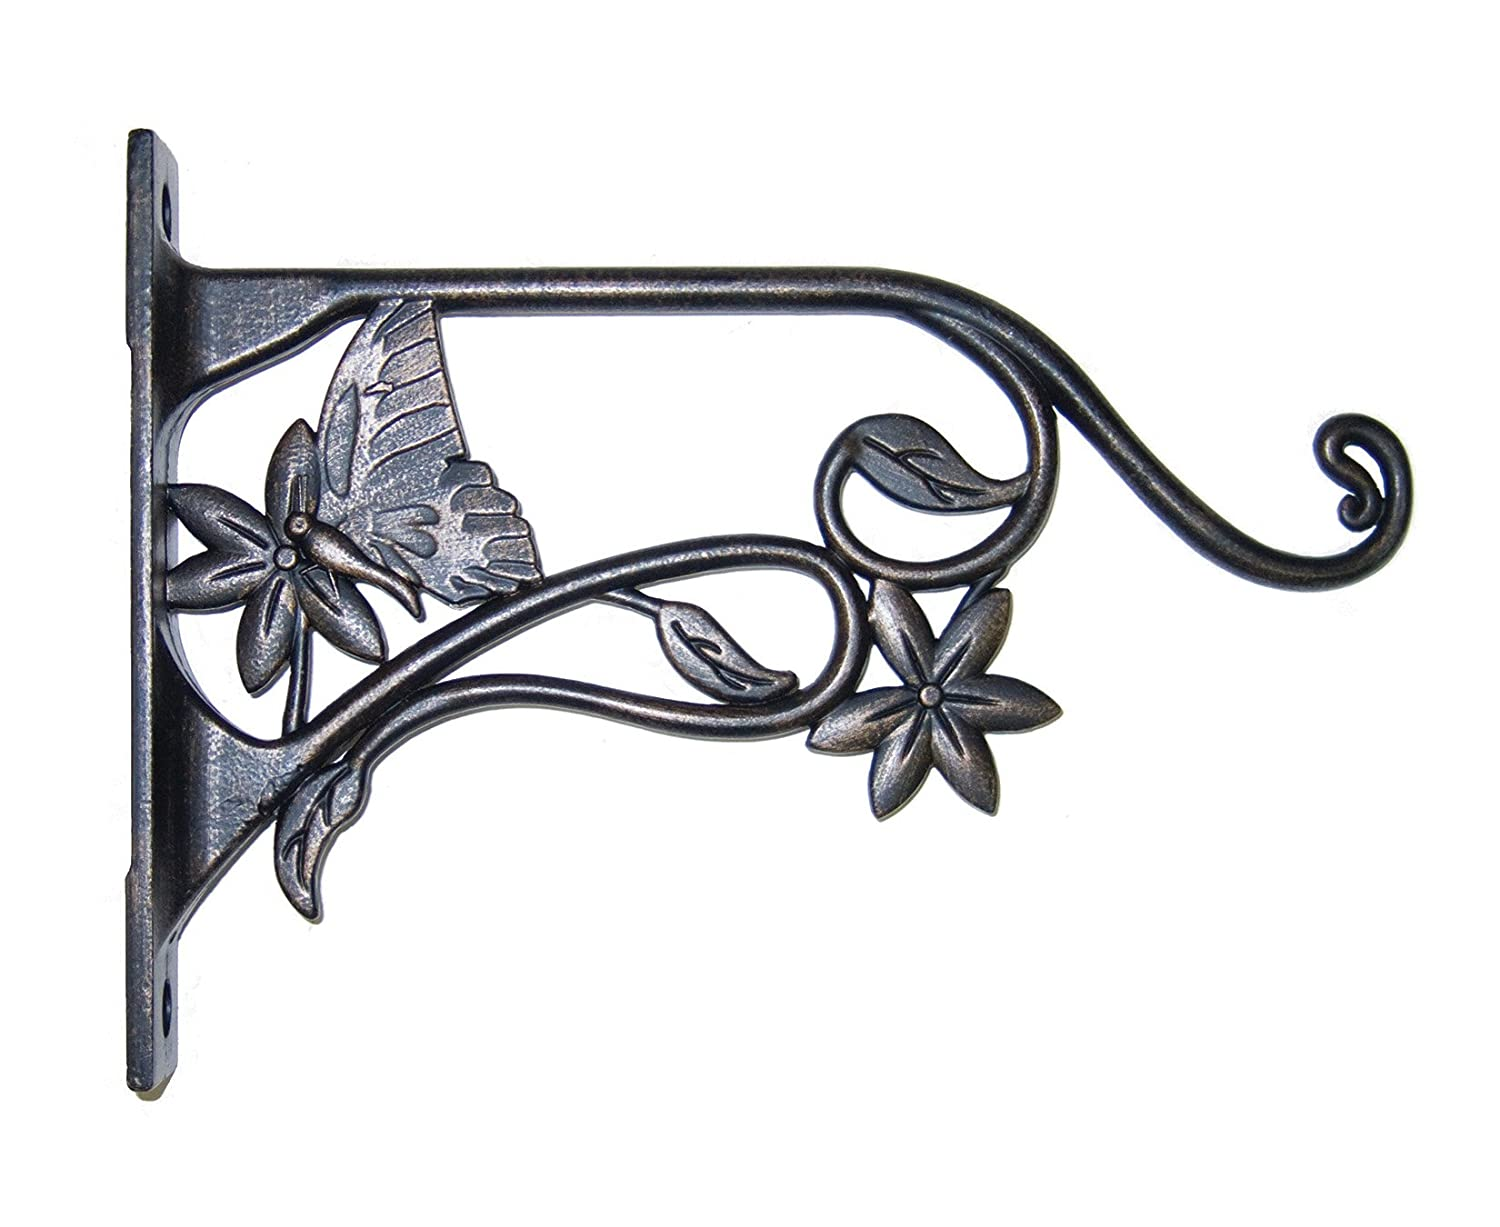 Panacea Plant Bracket with Butterfly Brushed, Bronze, 9 9 100506644